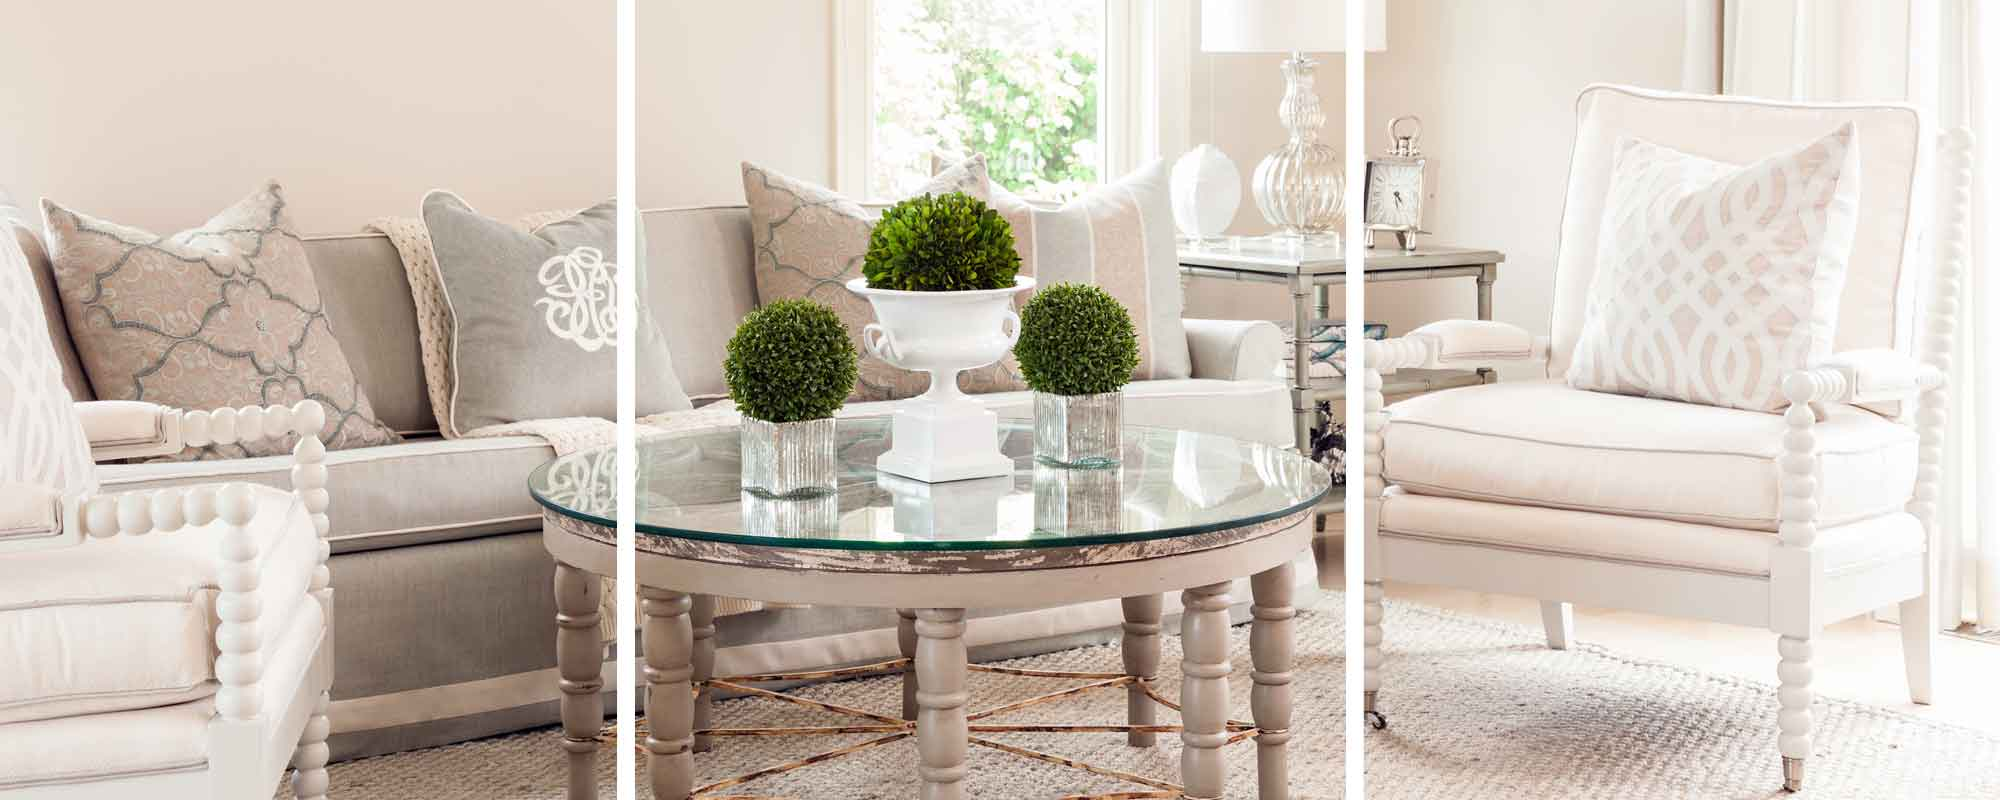 furniture style guide. Our Longstanding Love Affair With Interior Design Inspires Everything We Do\u2014including This Style Guide. Creating Spaces You Love\u2014ones That Uplift When Furniture Guide